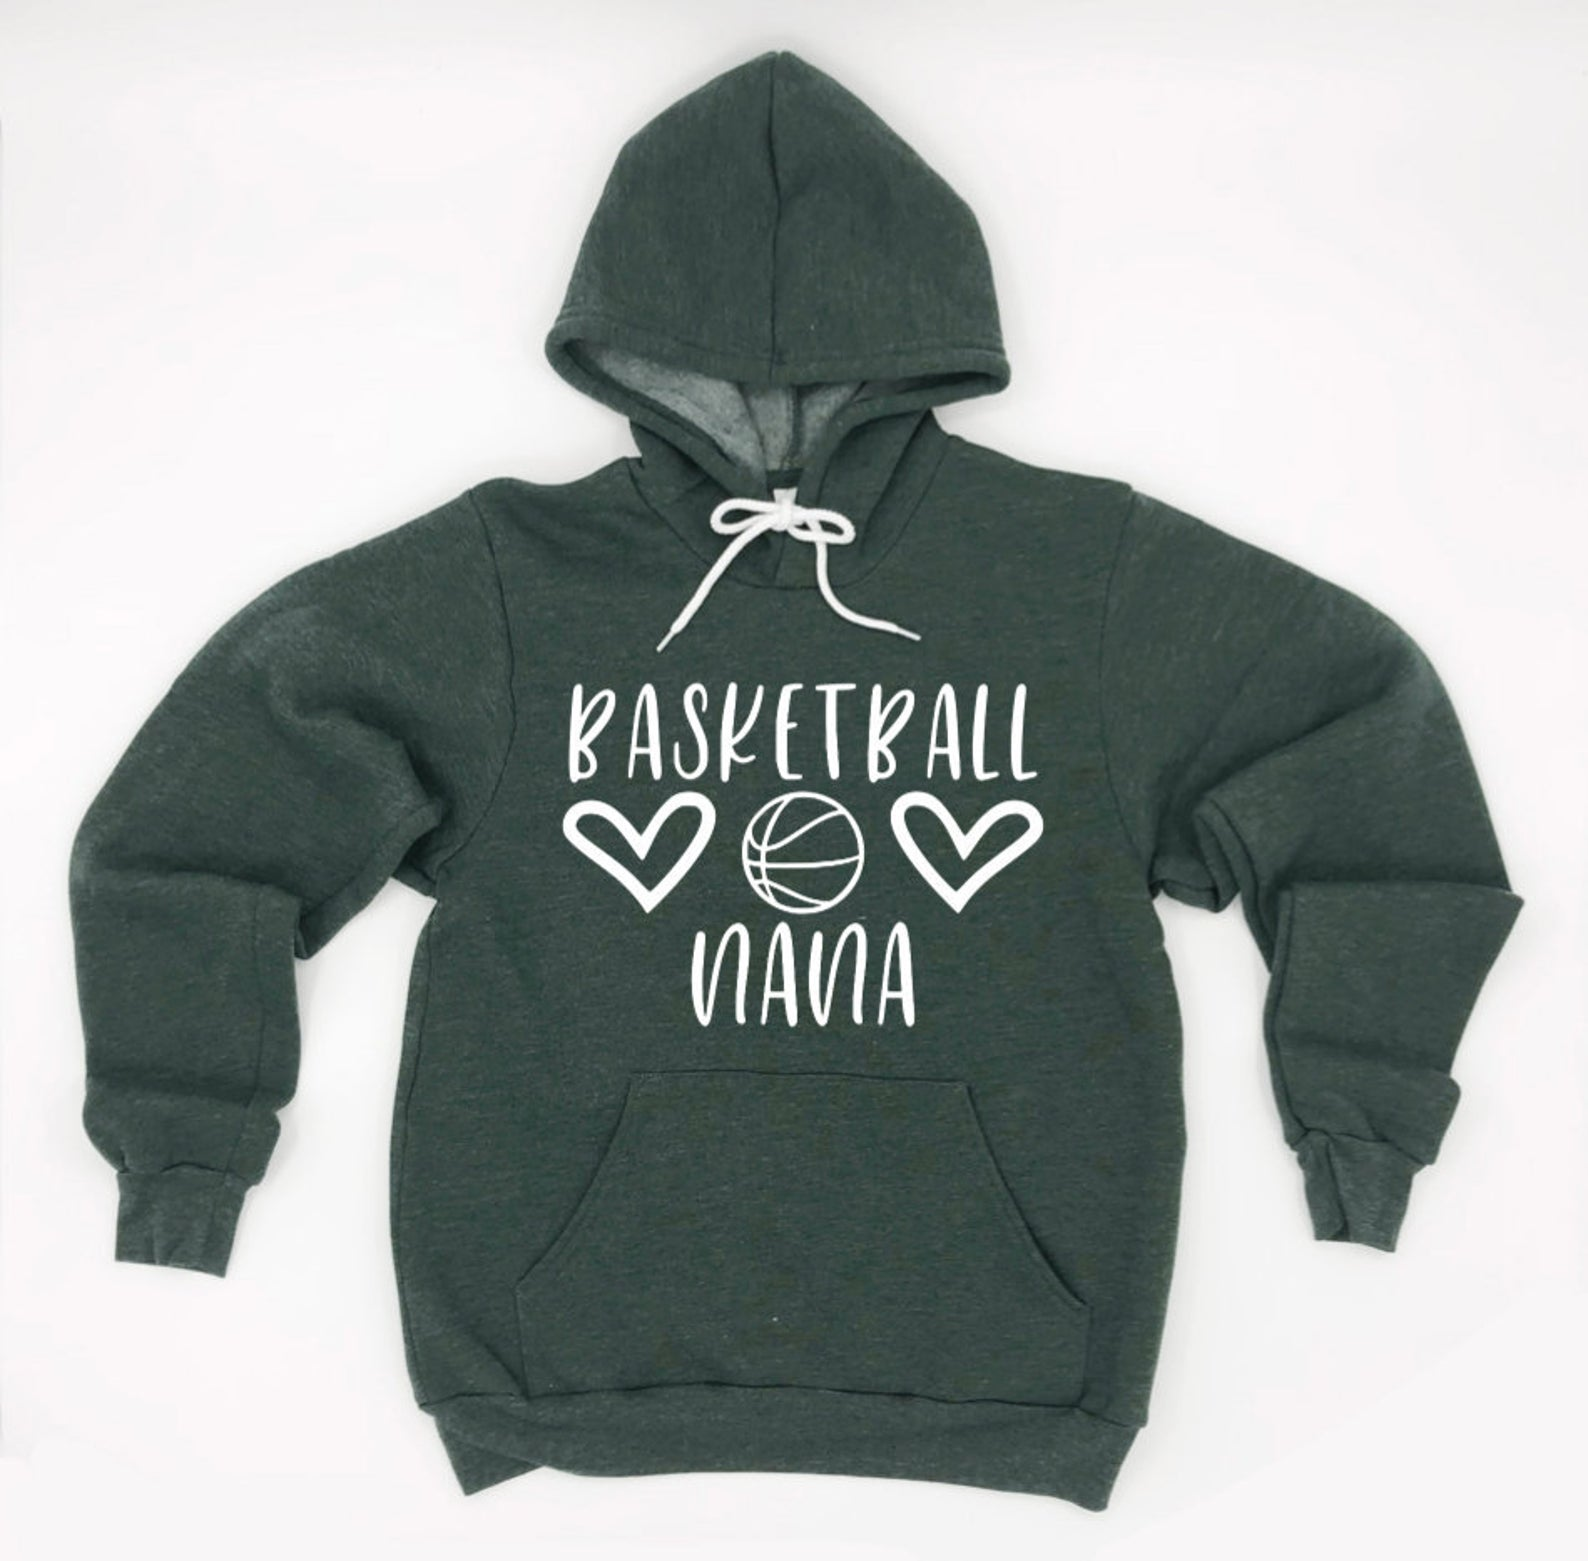 Basketball Nana Hoodie Pullover Sweatshirt - Nana Hoodie - Basketball Family Hoodies - Basketball Nana Sweatshirt - Gift For Nana